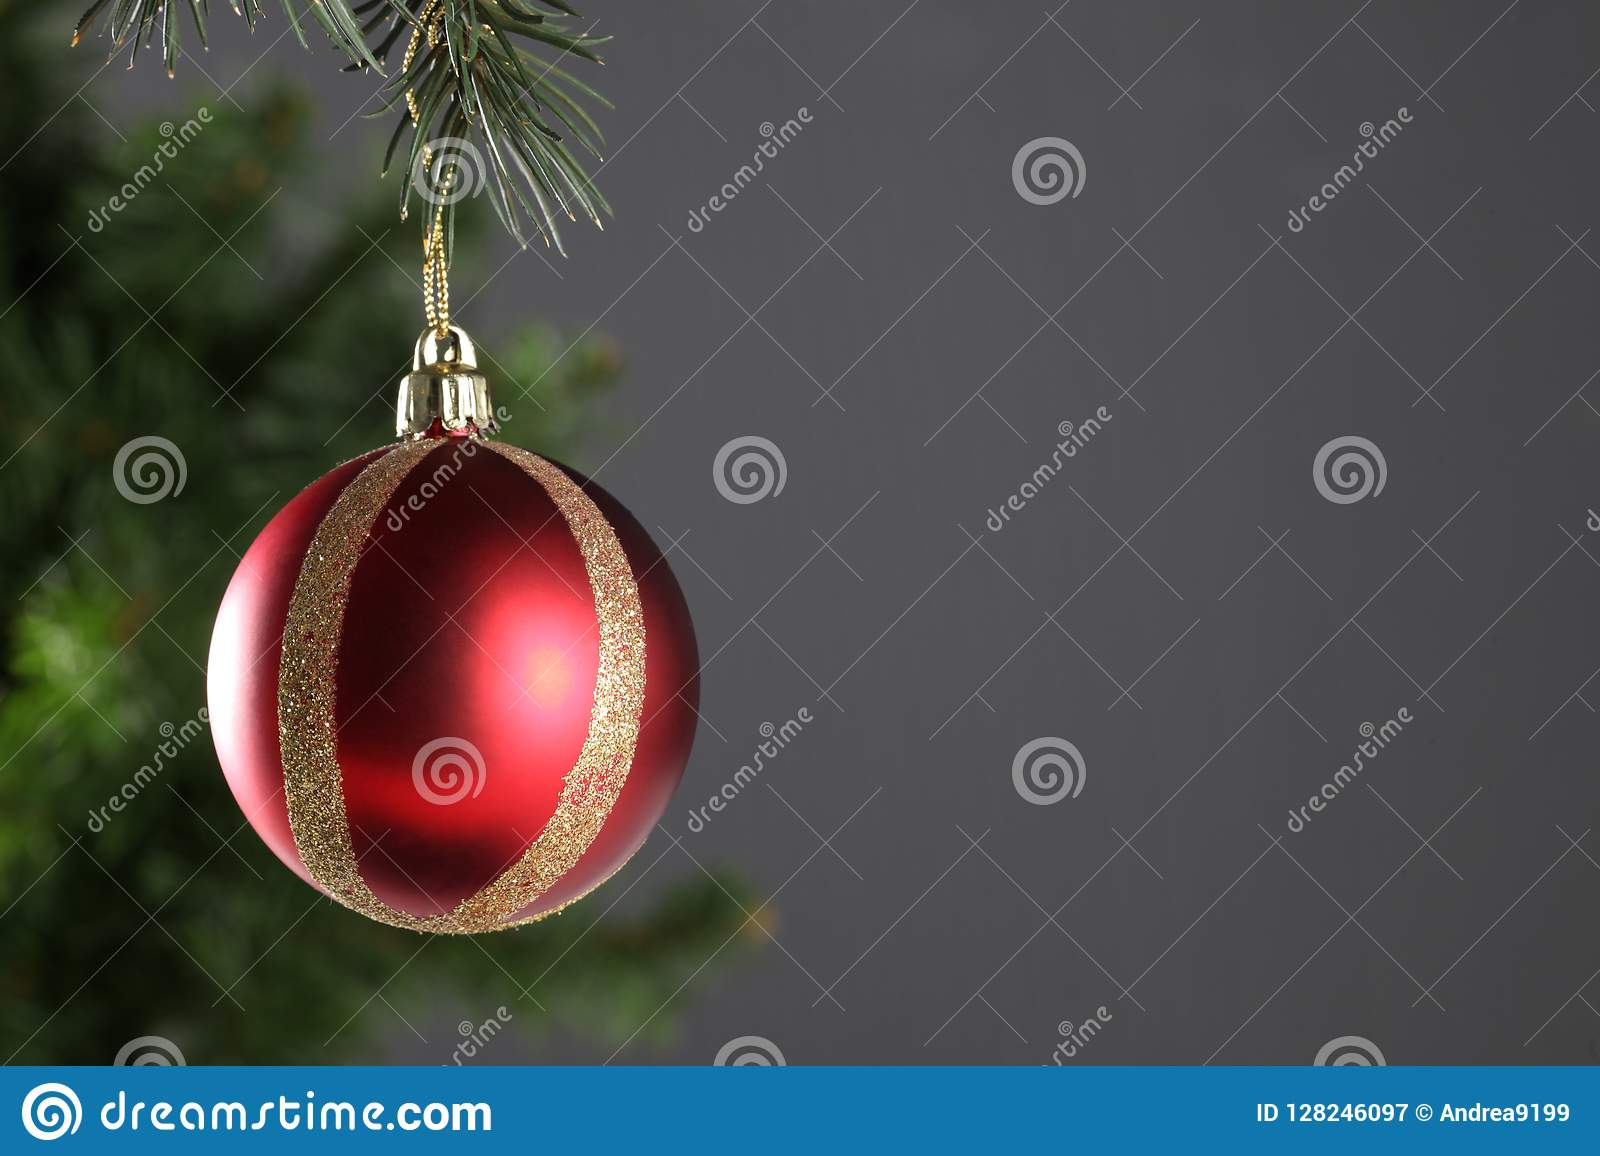 Christmas ball hanged on a christmas tree branch with copy space on grey background